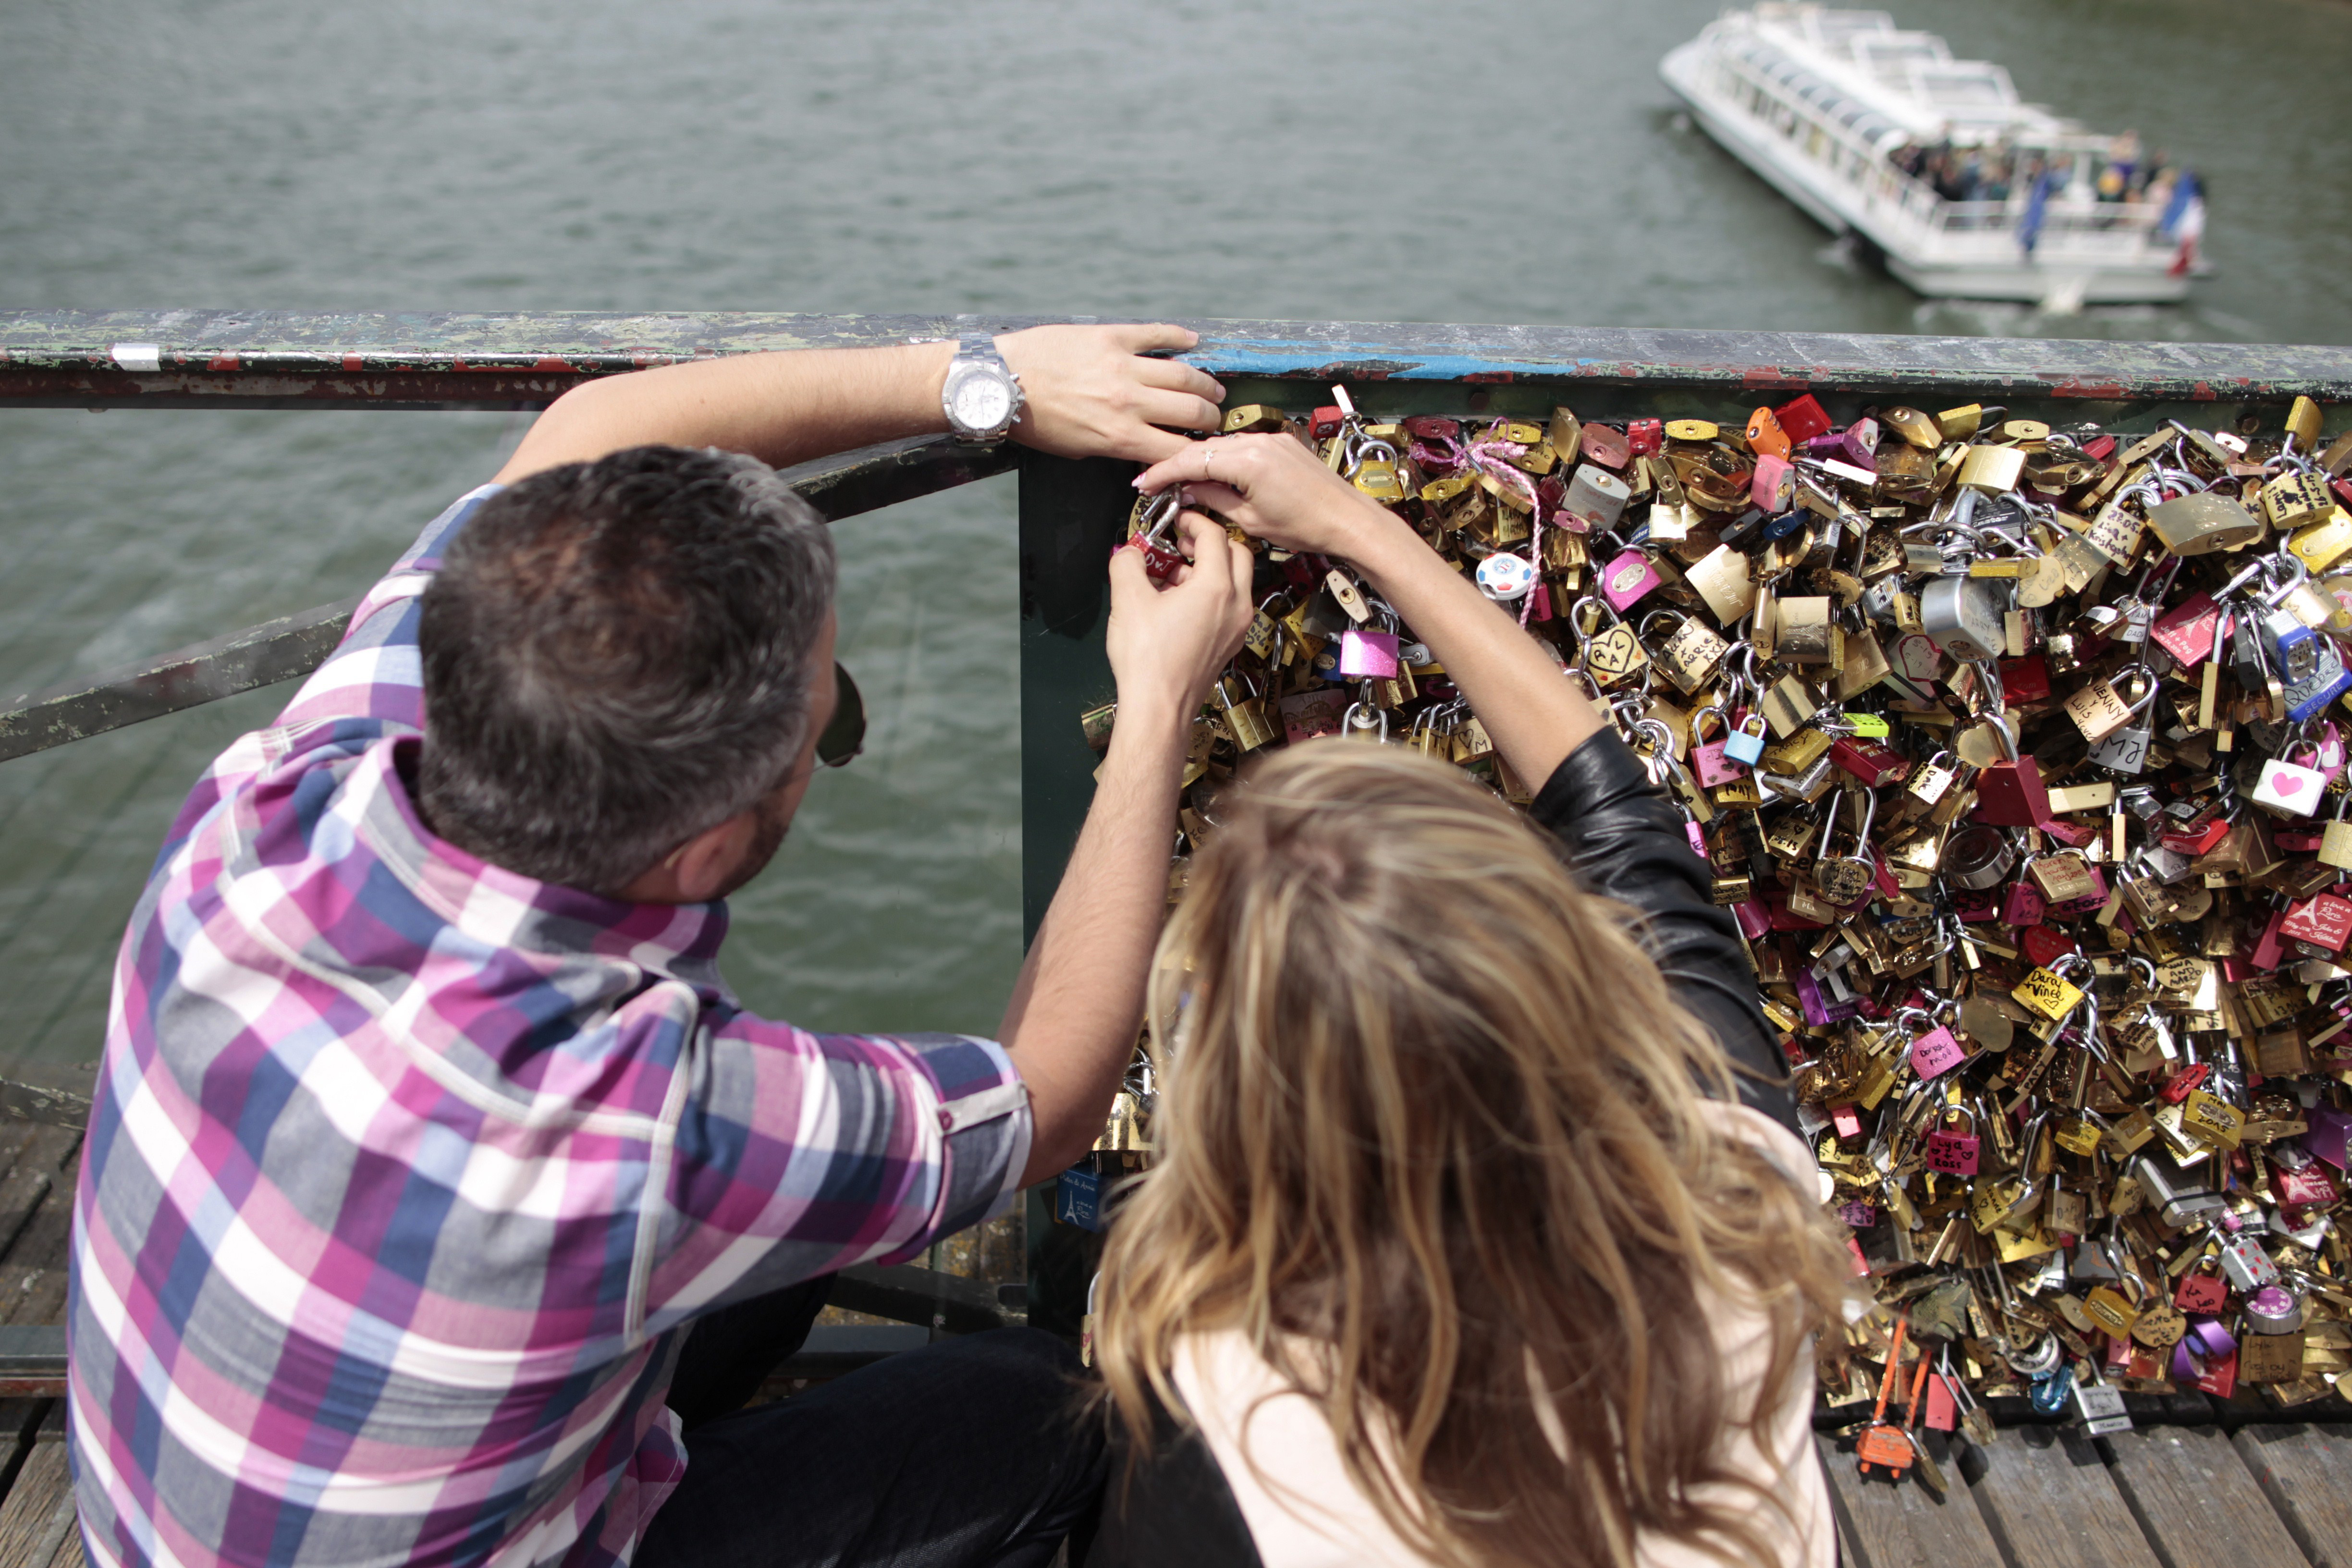 A couple locks a padlock on the Pont des Arts on May 29, 2015, in Paris as the Paris municipality announced that the bridge's fences have to be removed due to the weight of the padlocks put by tourists to symbolize everlasting love